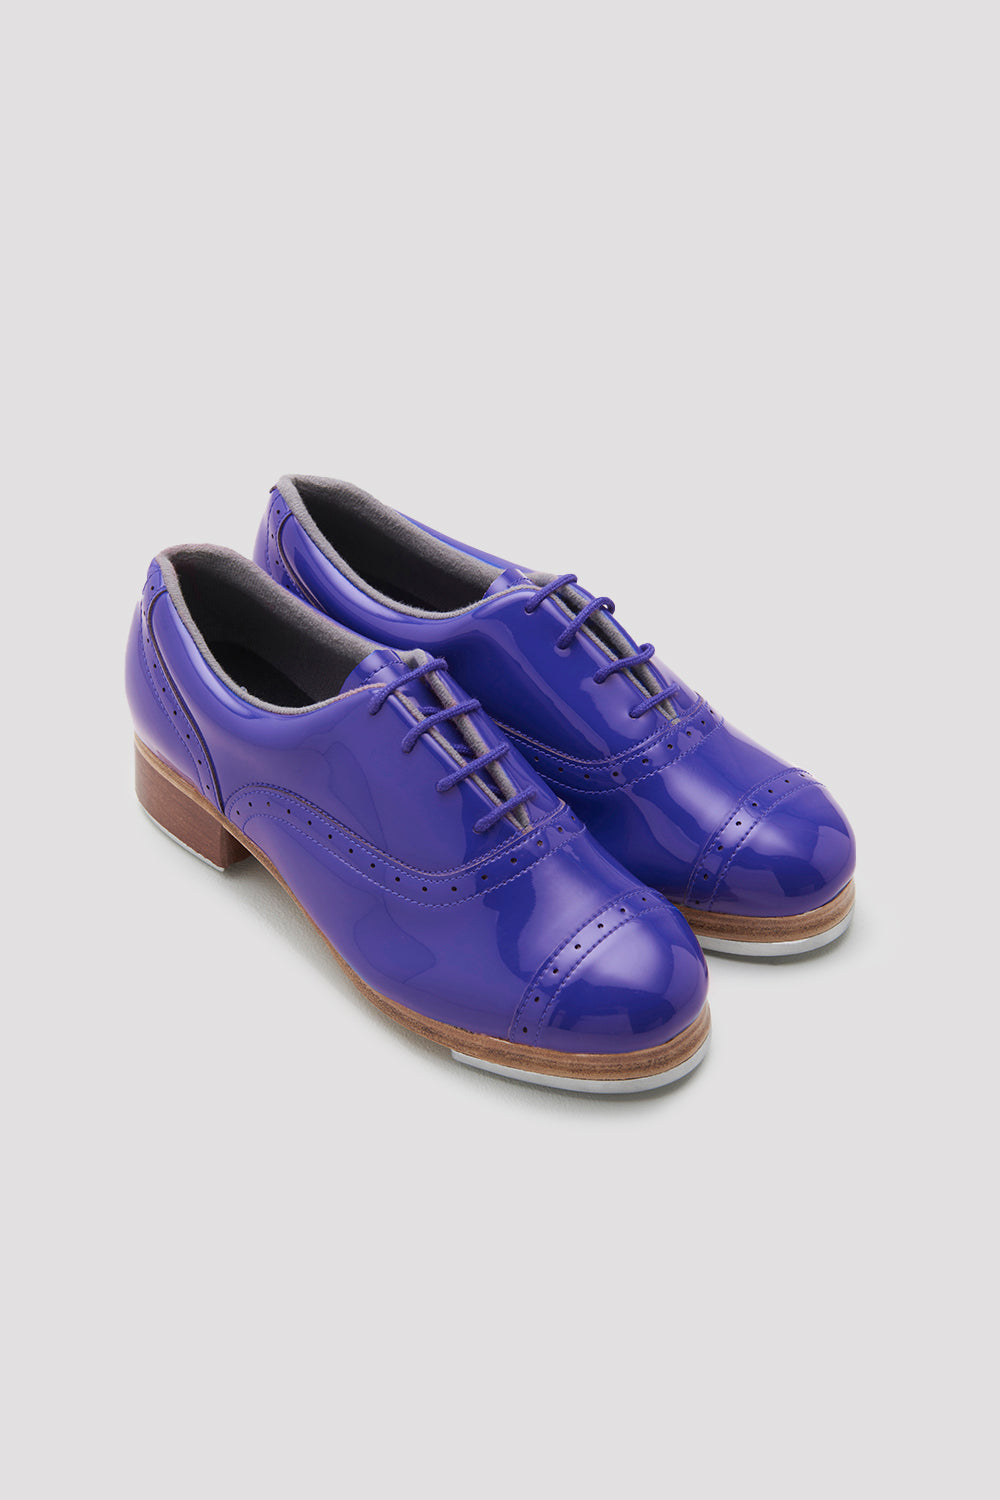 Dark blue patent Bloch Ladies Jason Samuels Smith Patent Tap Shoes pair of shoes flatlay